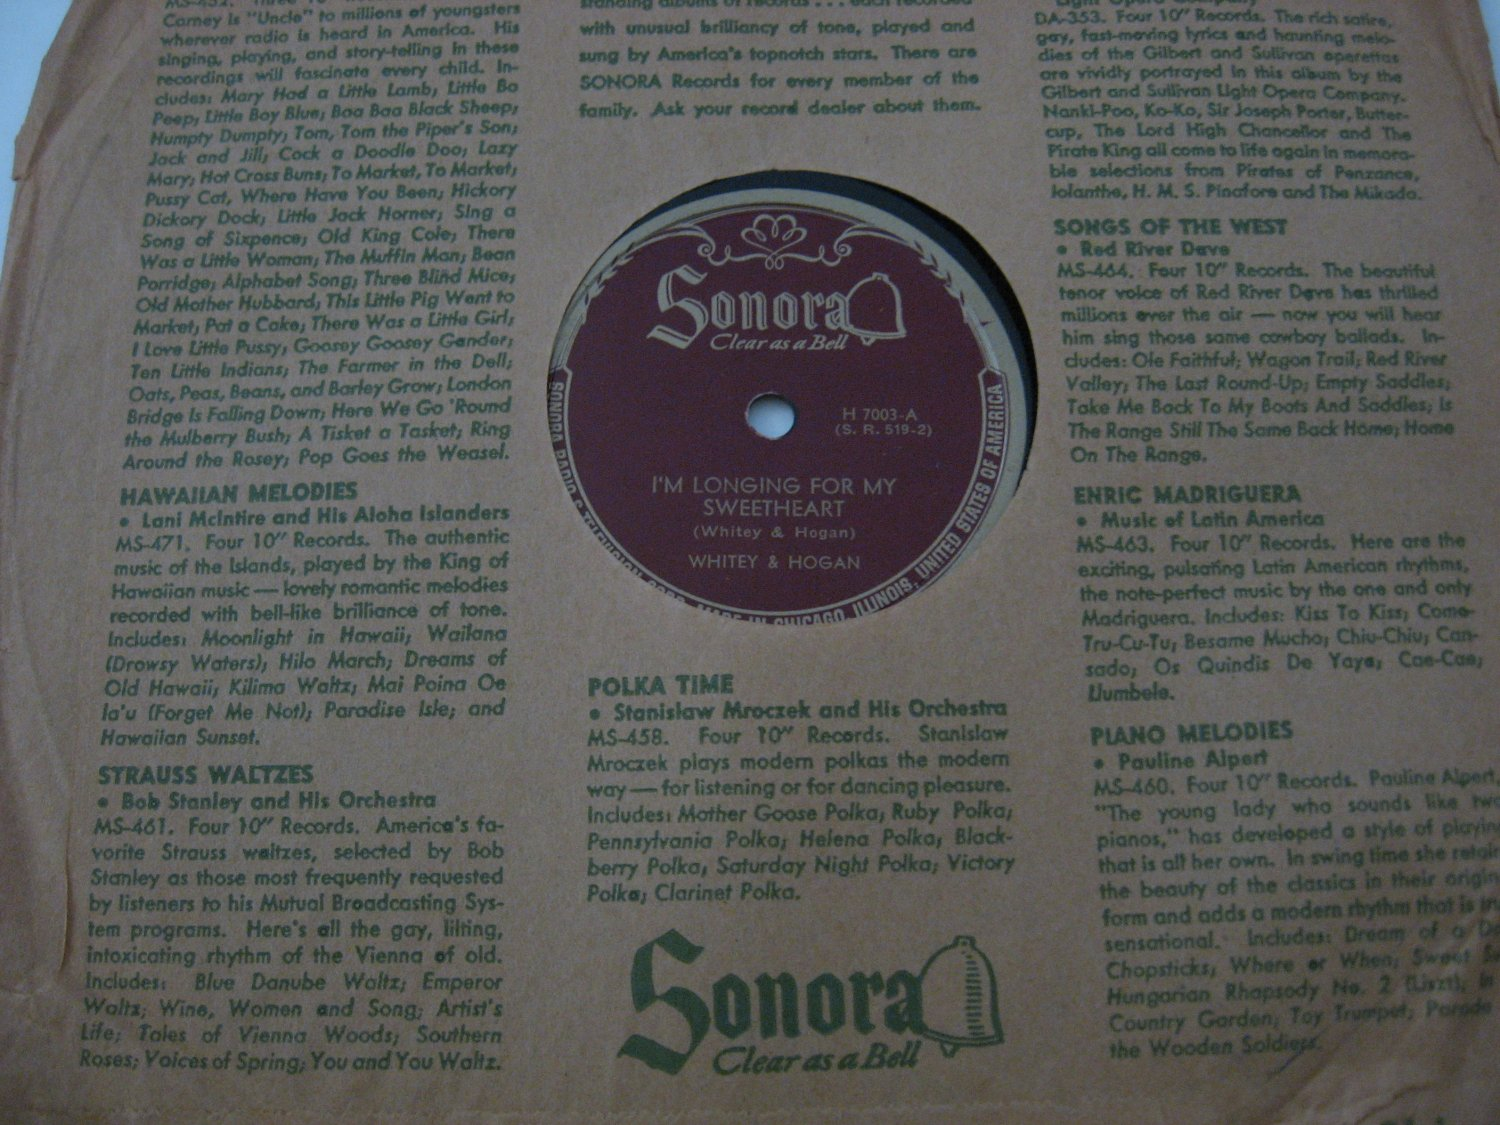 Whitney & Hogan - Talking To Mother/I'm Longing For My Sweetheart - 1949  (Vinyl Records)